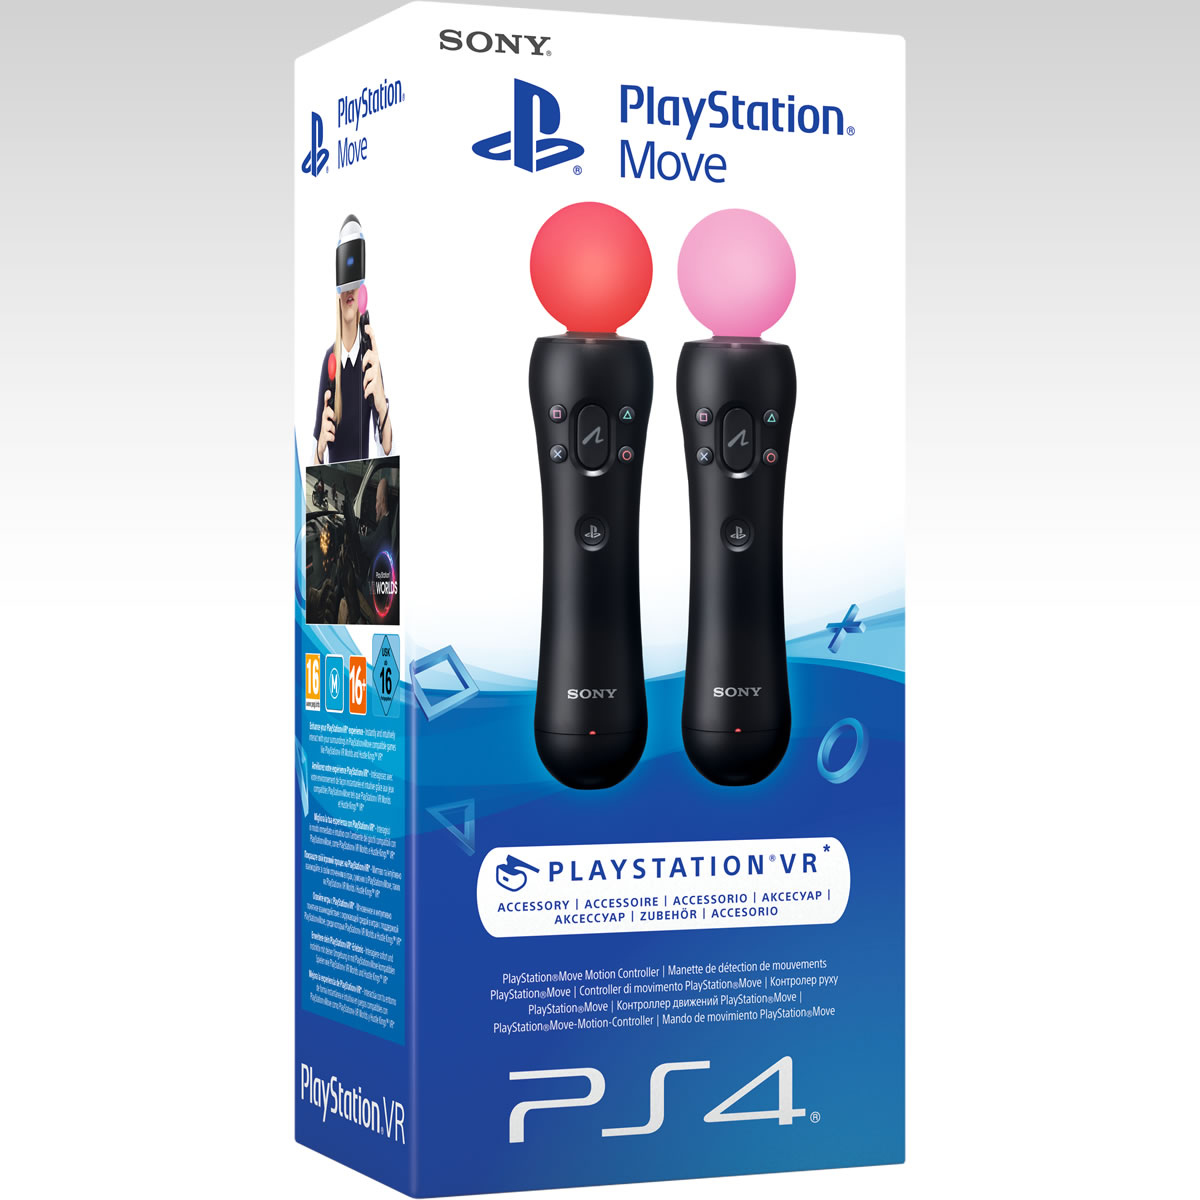 SONY OFFICIAL PLAYSTATION MOVE - MOTION CONTROLLER Twin Pack PS719882756 (PS4, PSVR)